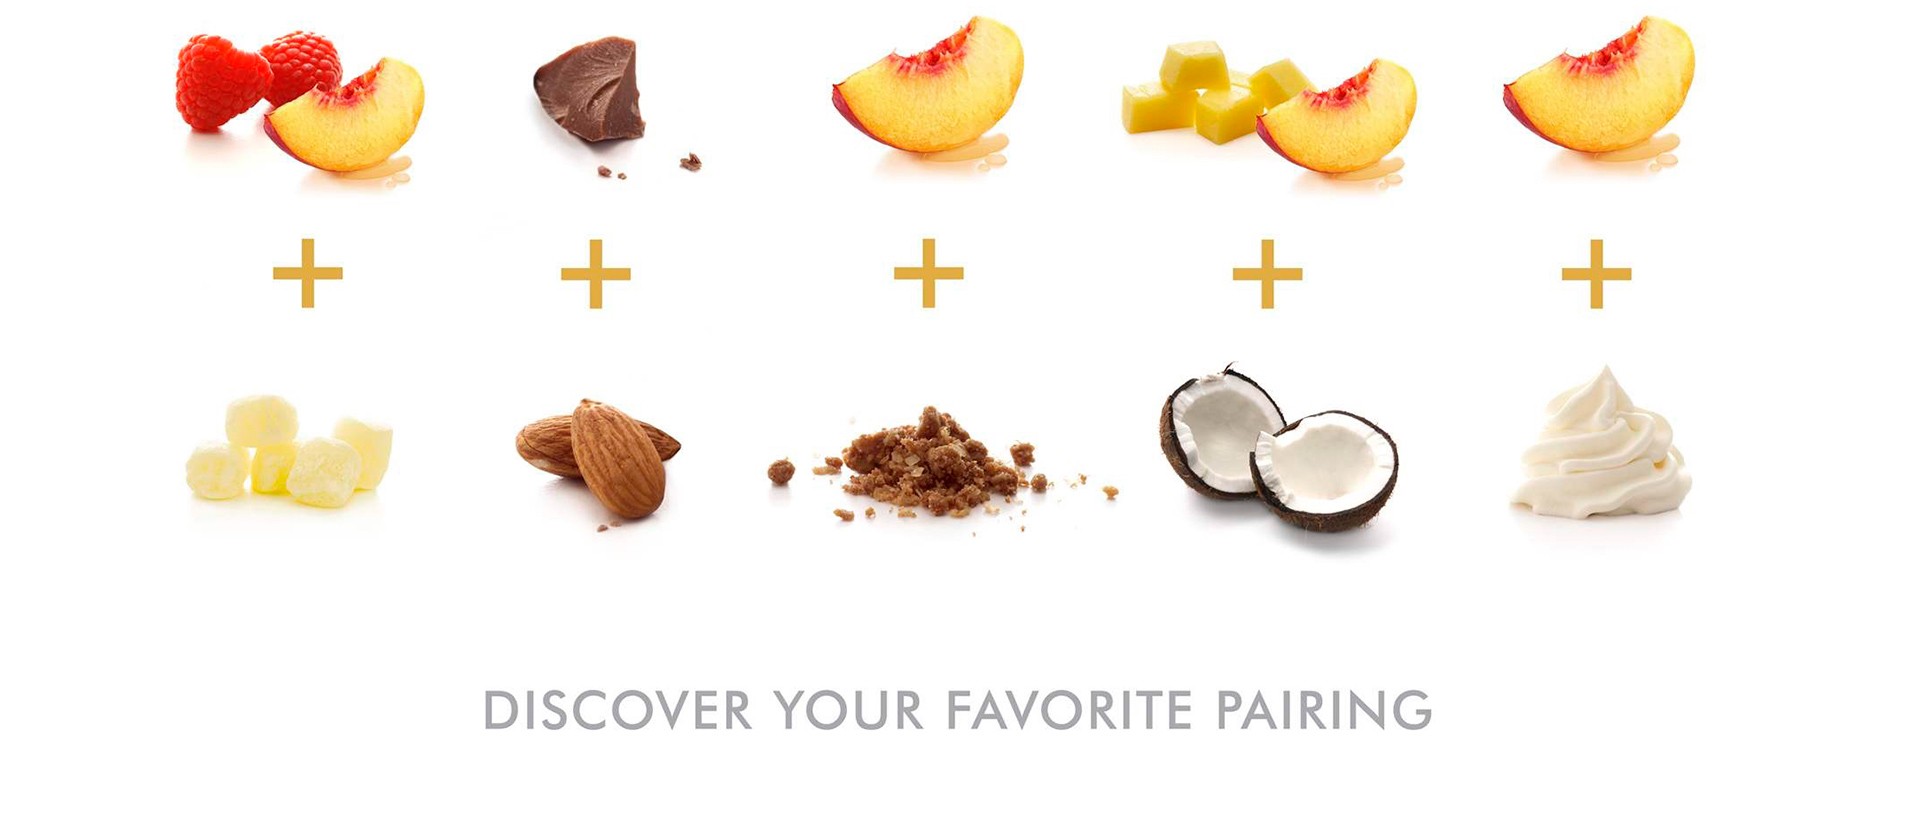 pinkberry_02_campaigns-3